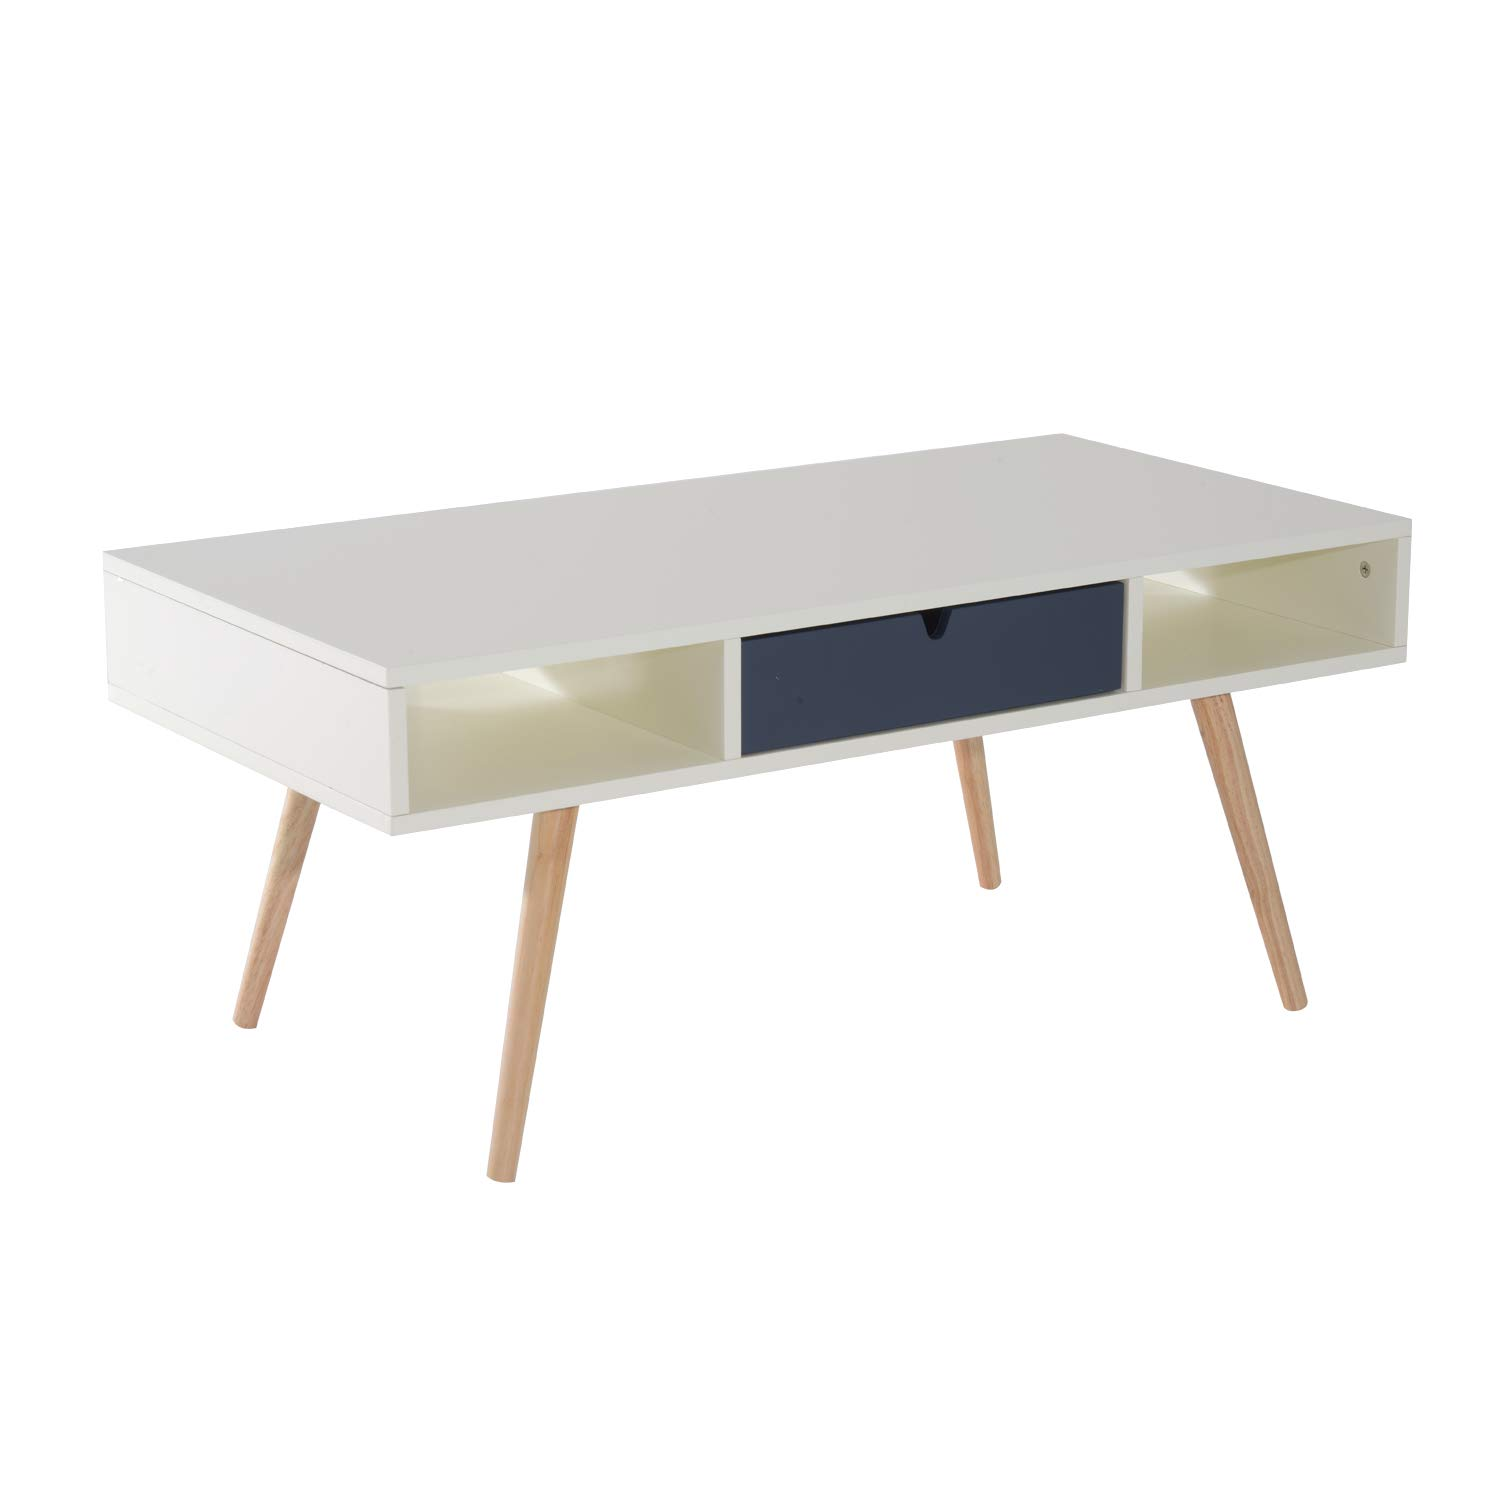 HomCom 40'' Modern Wooden Coffee Table With Drawer - White/Blue Grey/Woodgrain by HOMCOM